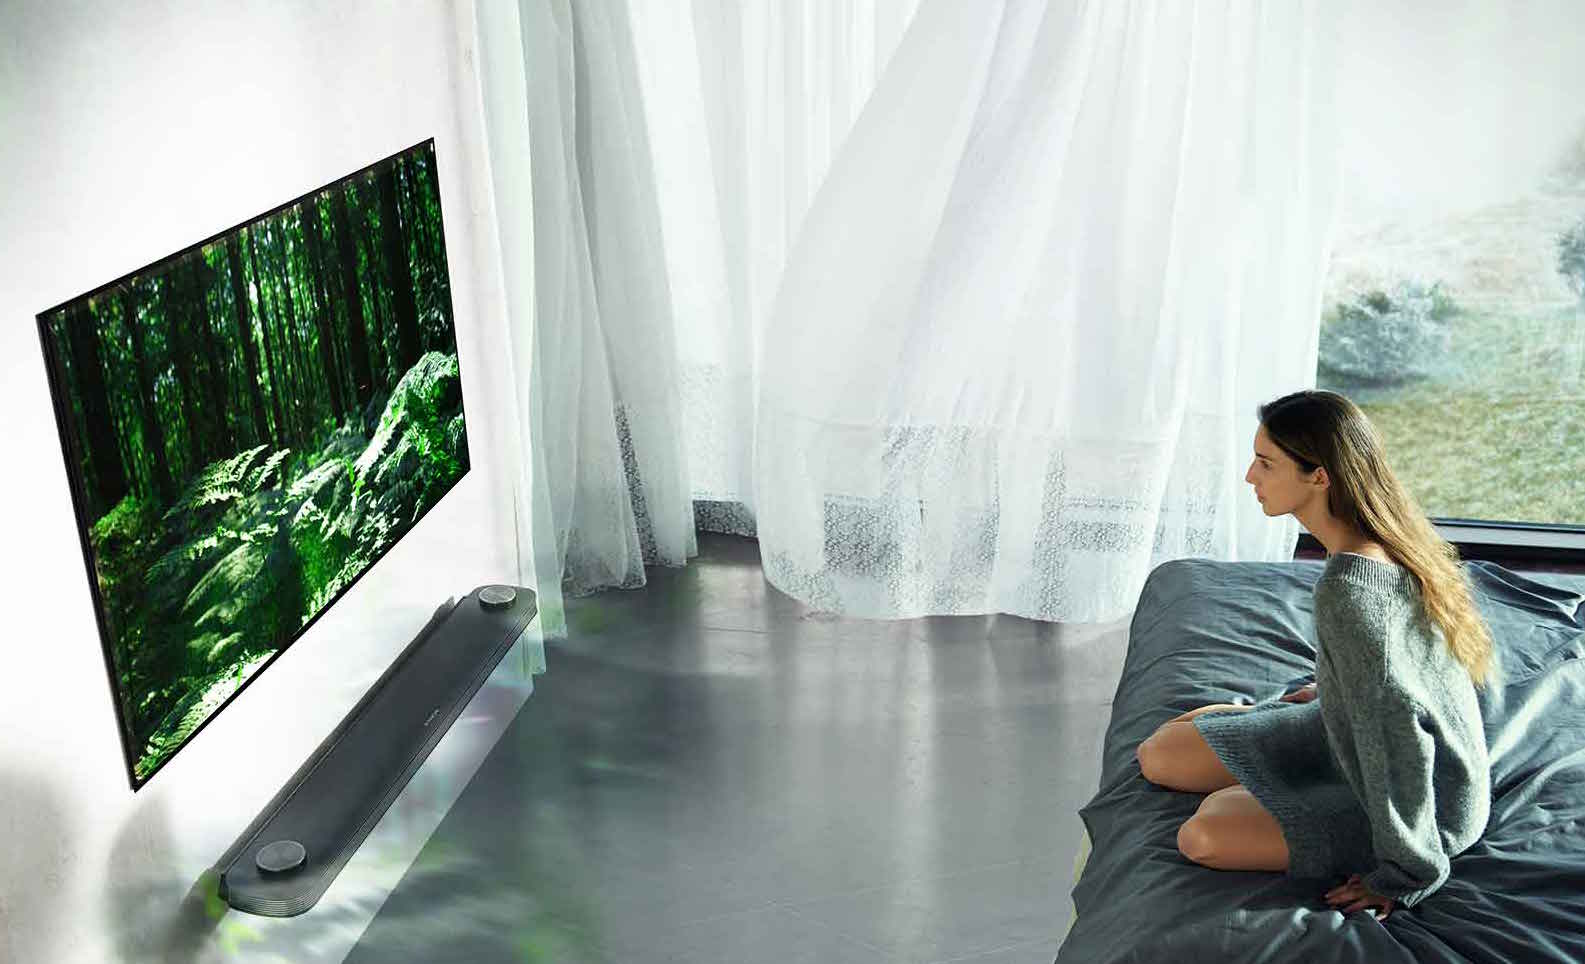 The LG W7 featherweight TV